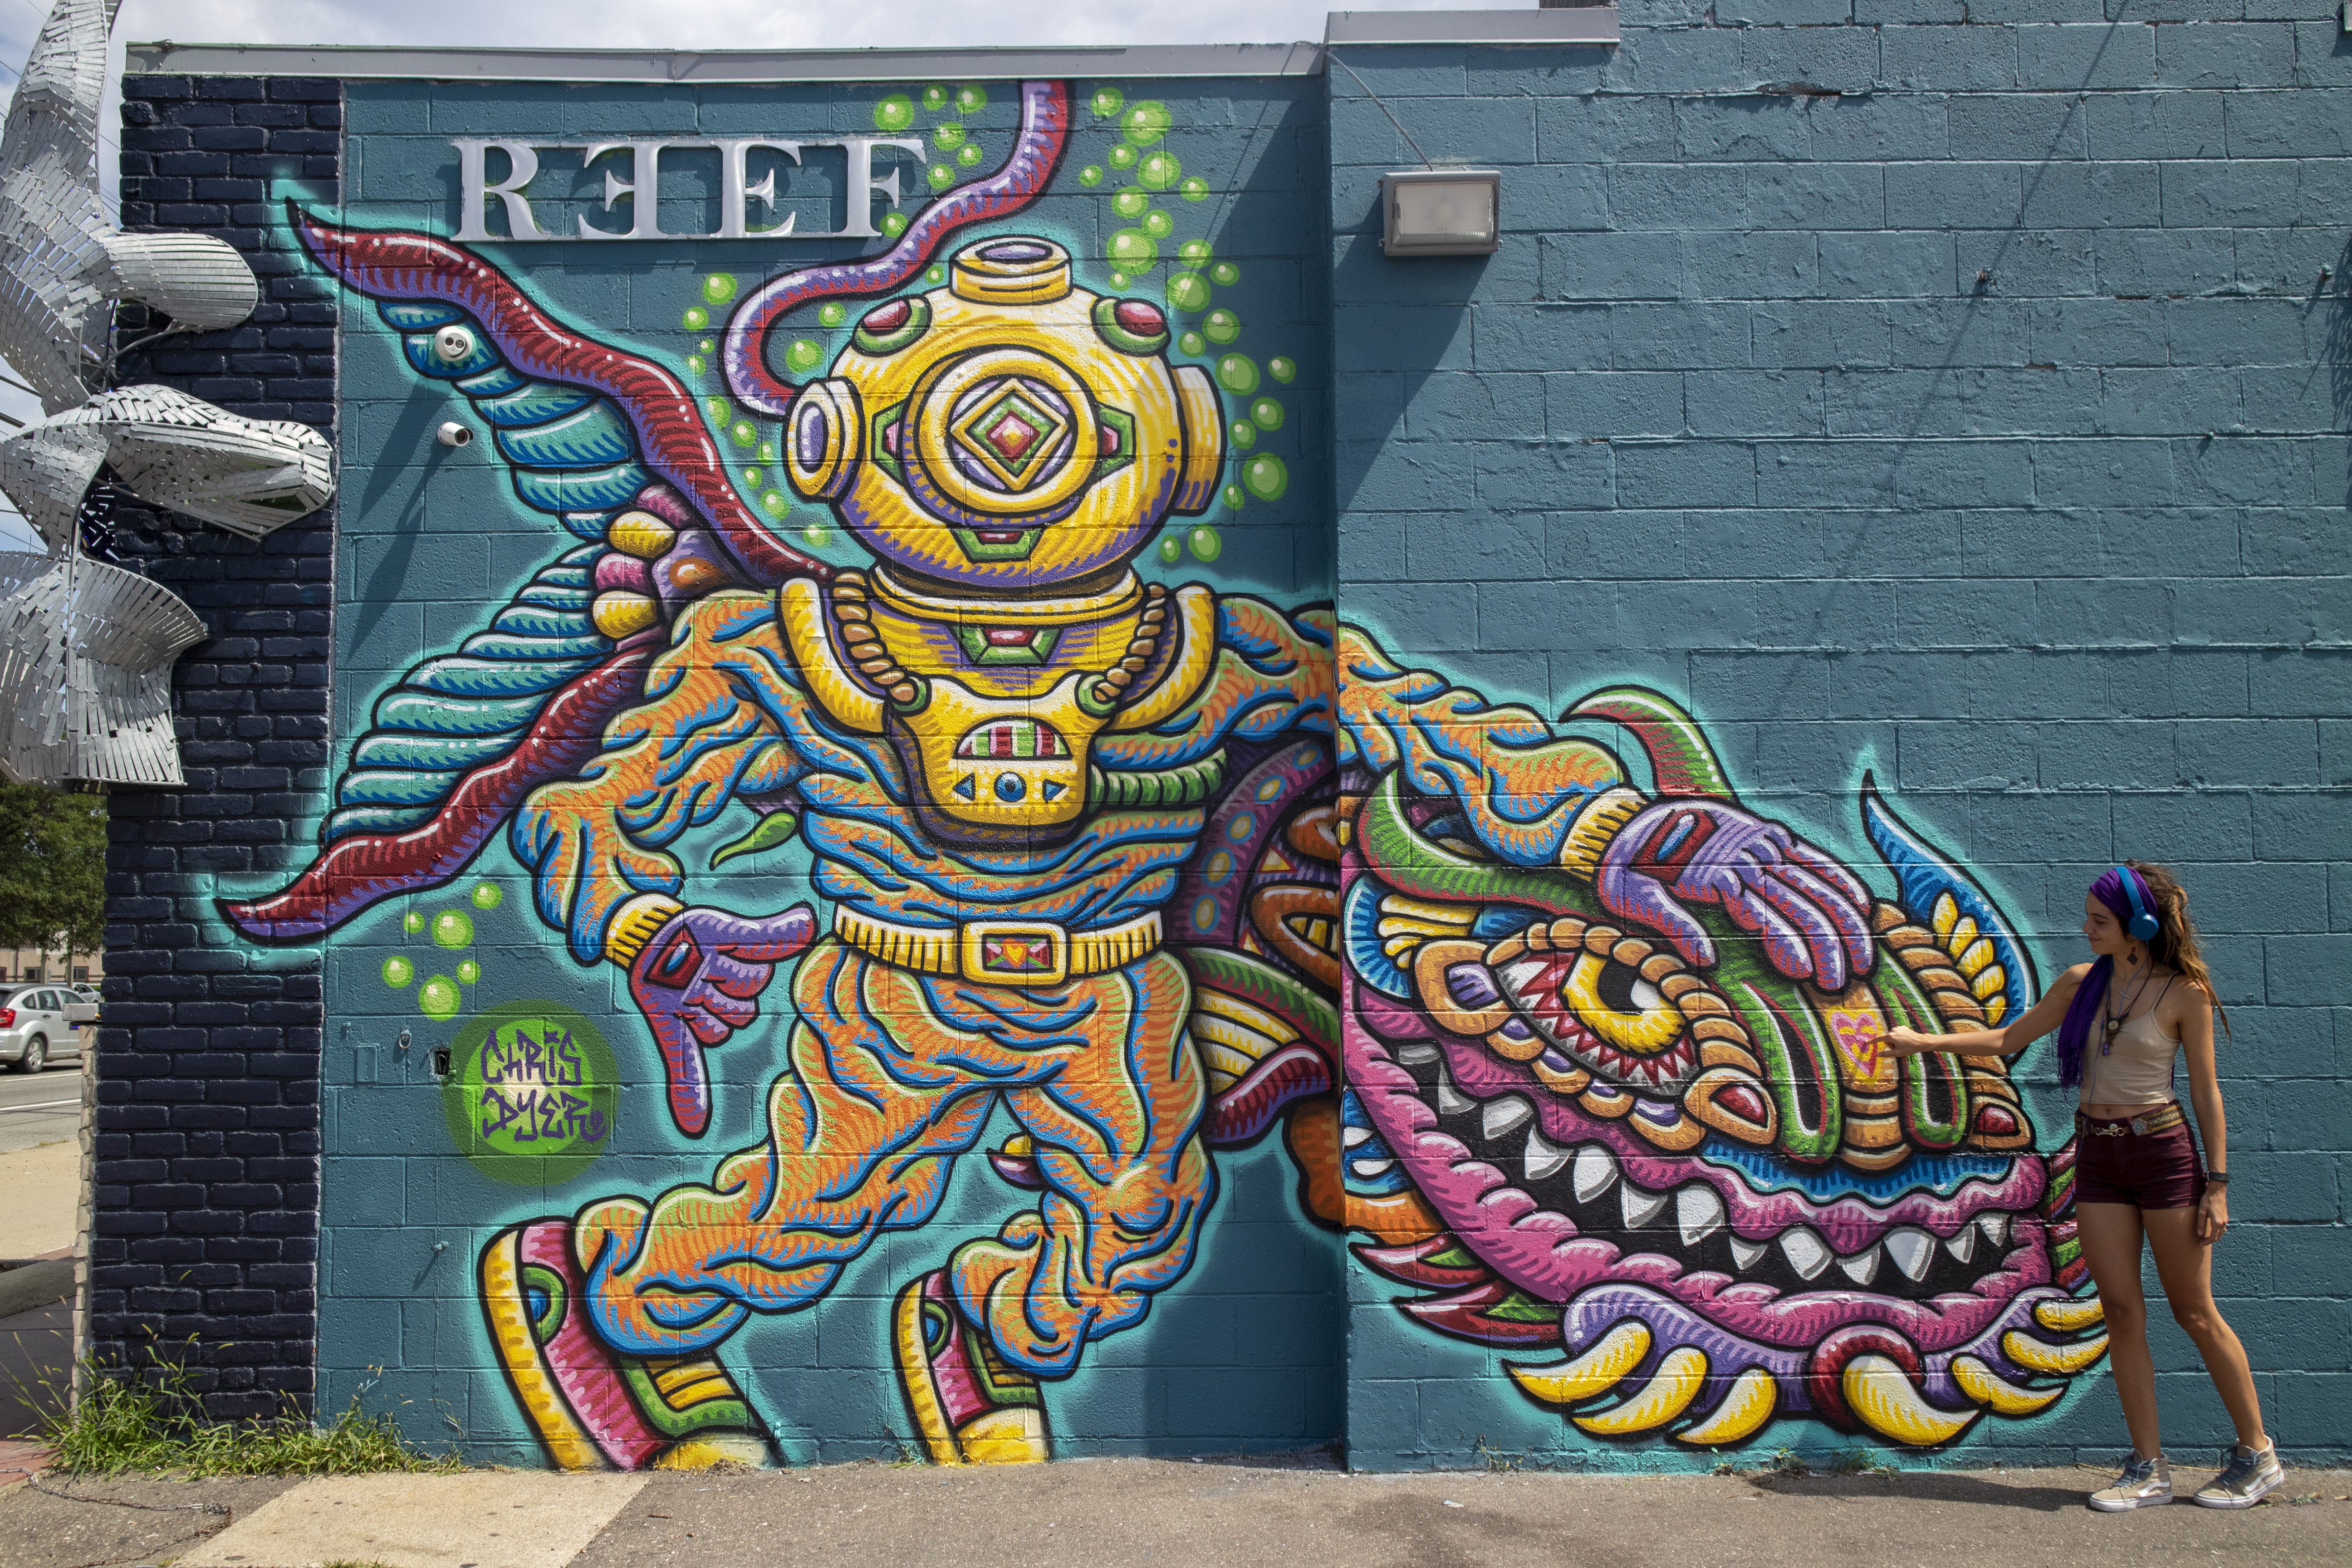 Reef Diver Mural by Chris Dyer